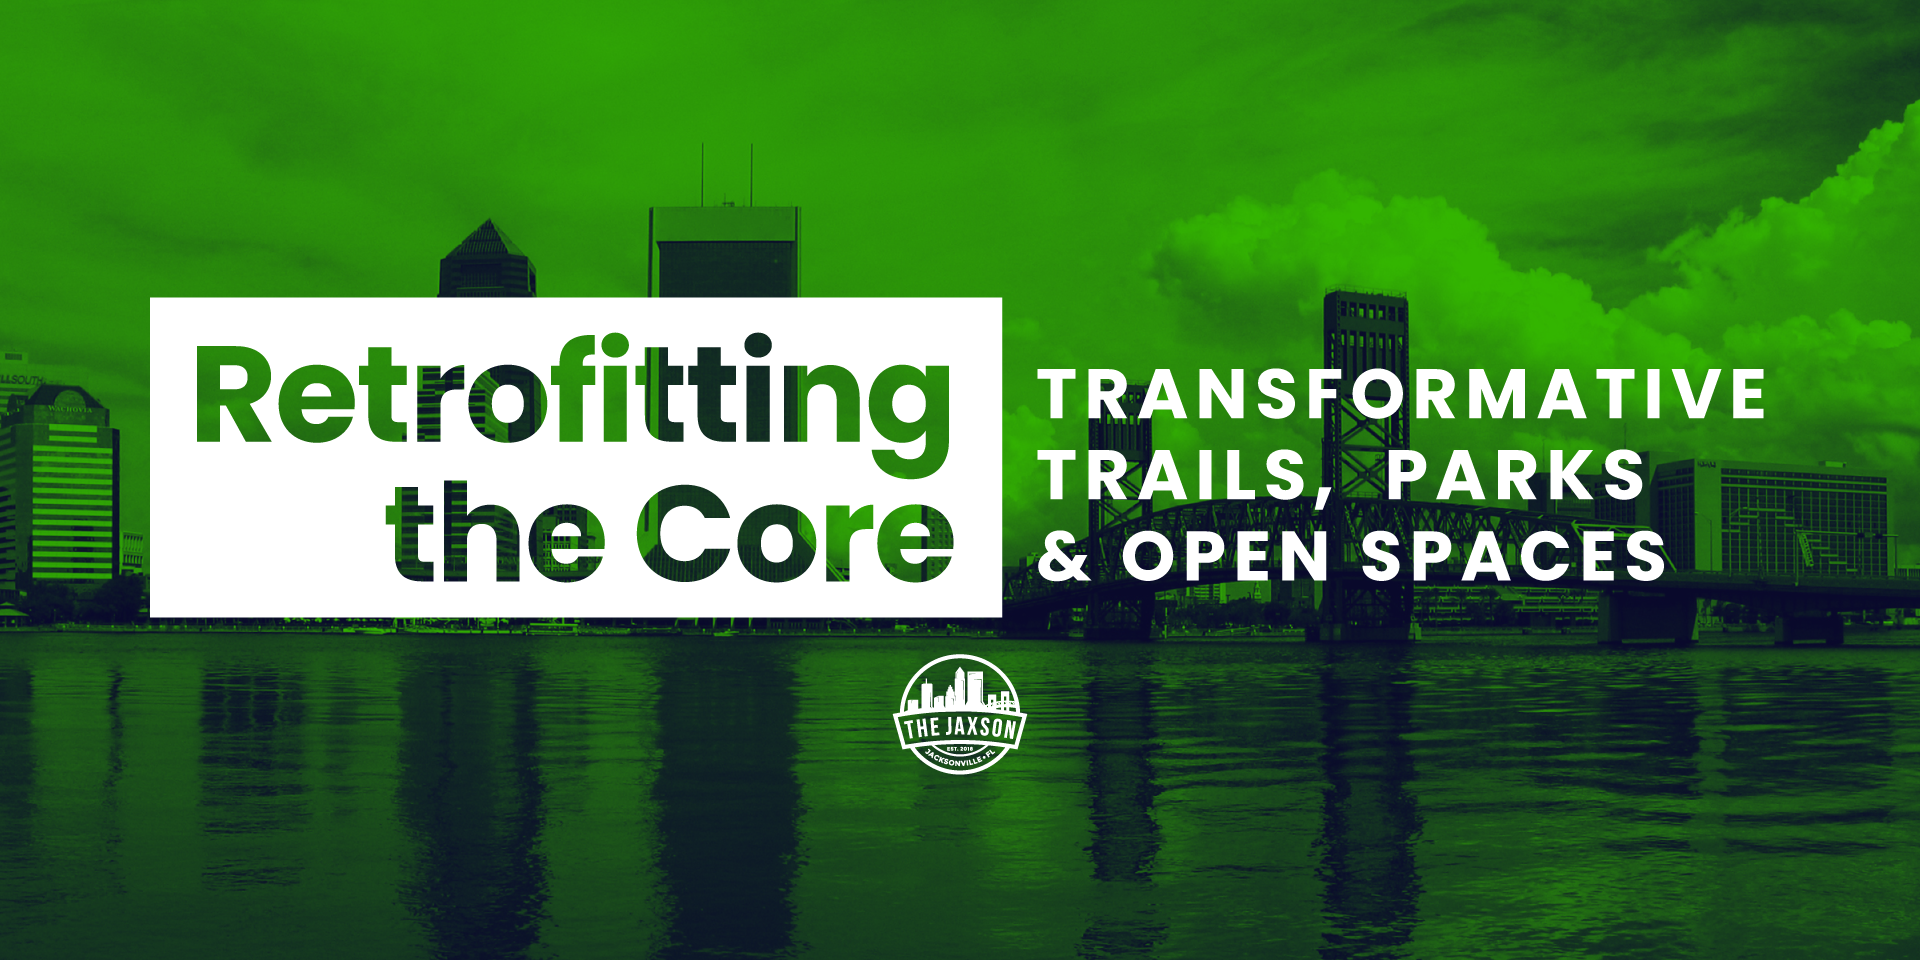 The Jaxson presents Retrofitting the Core: Transformative Trails, Parks & Open Spaces (Virtual)